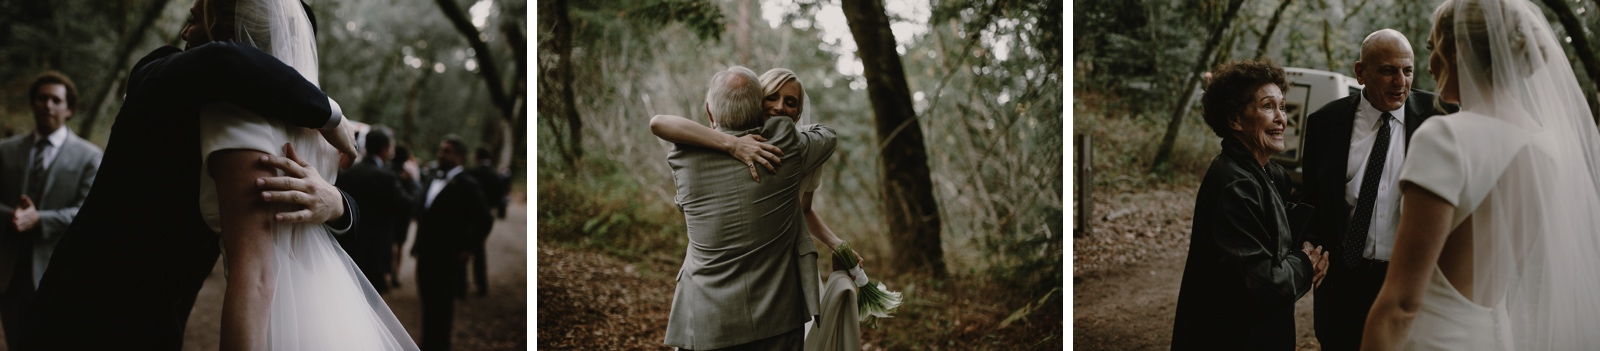 Santa_Lucia_Preserve_Fall_Forest_Wedding061.JPG